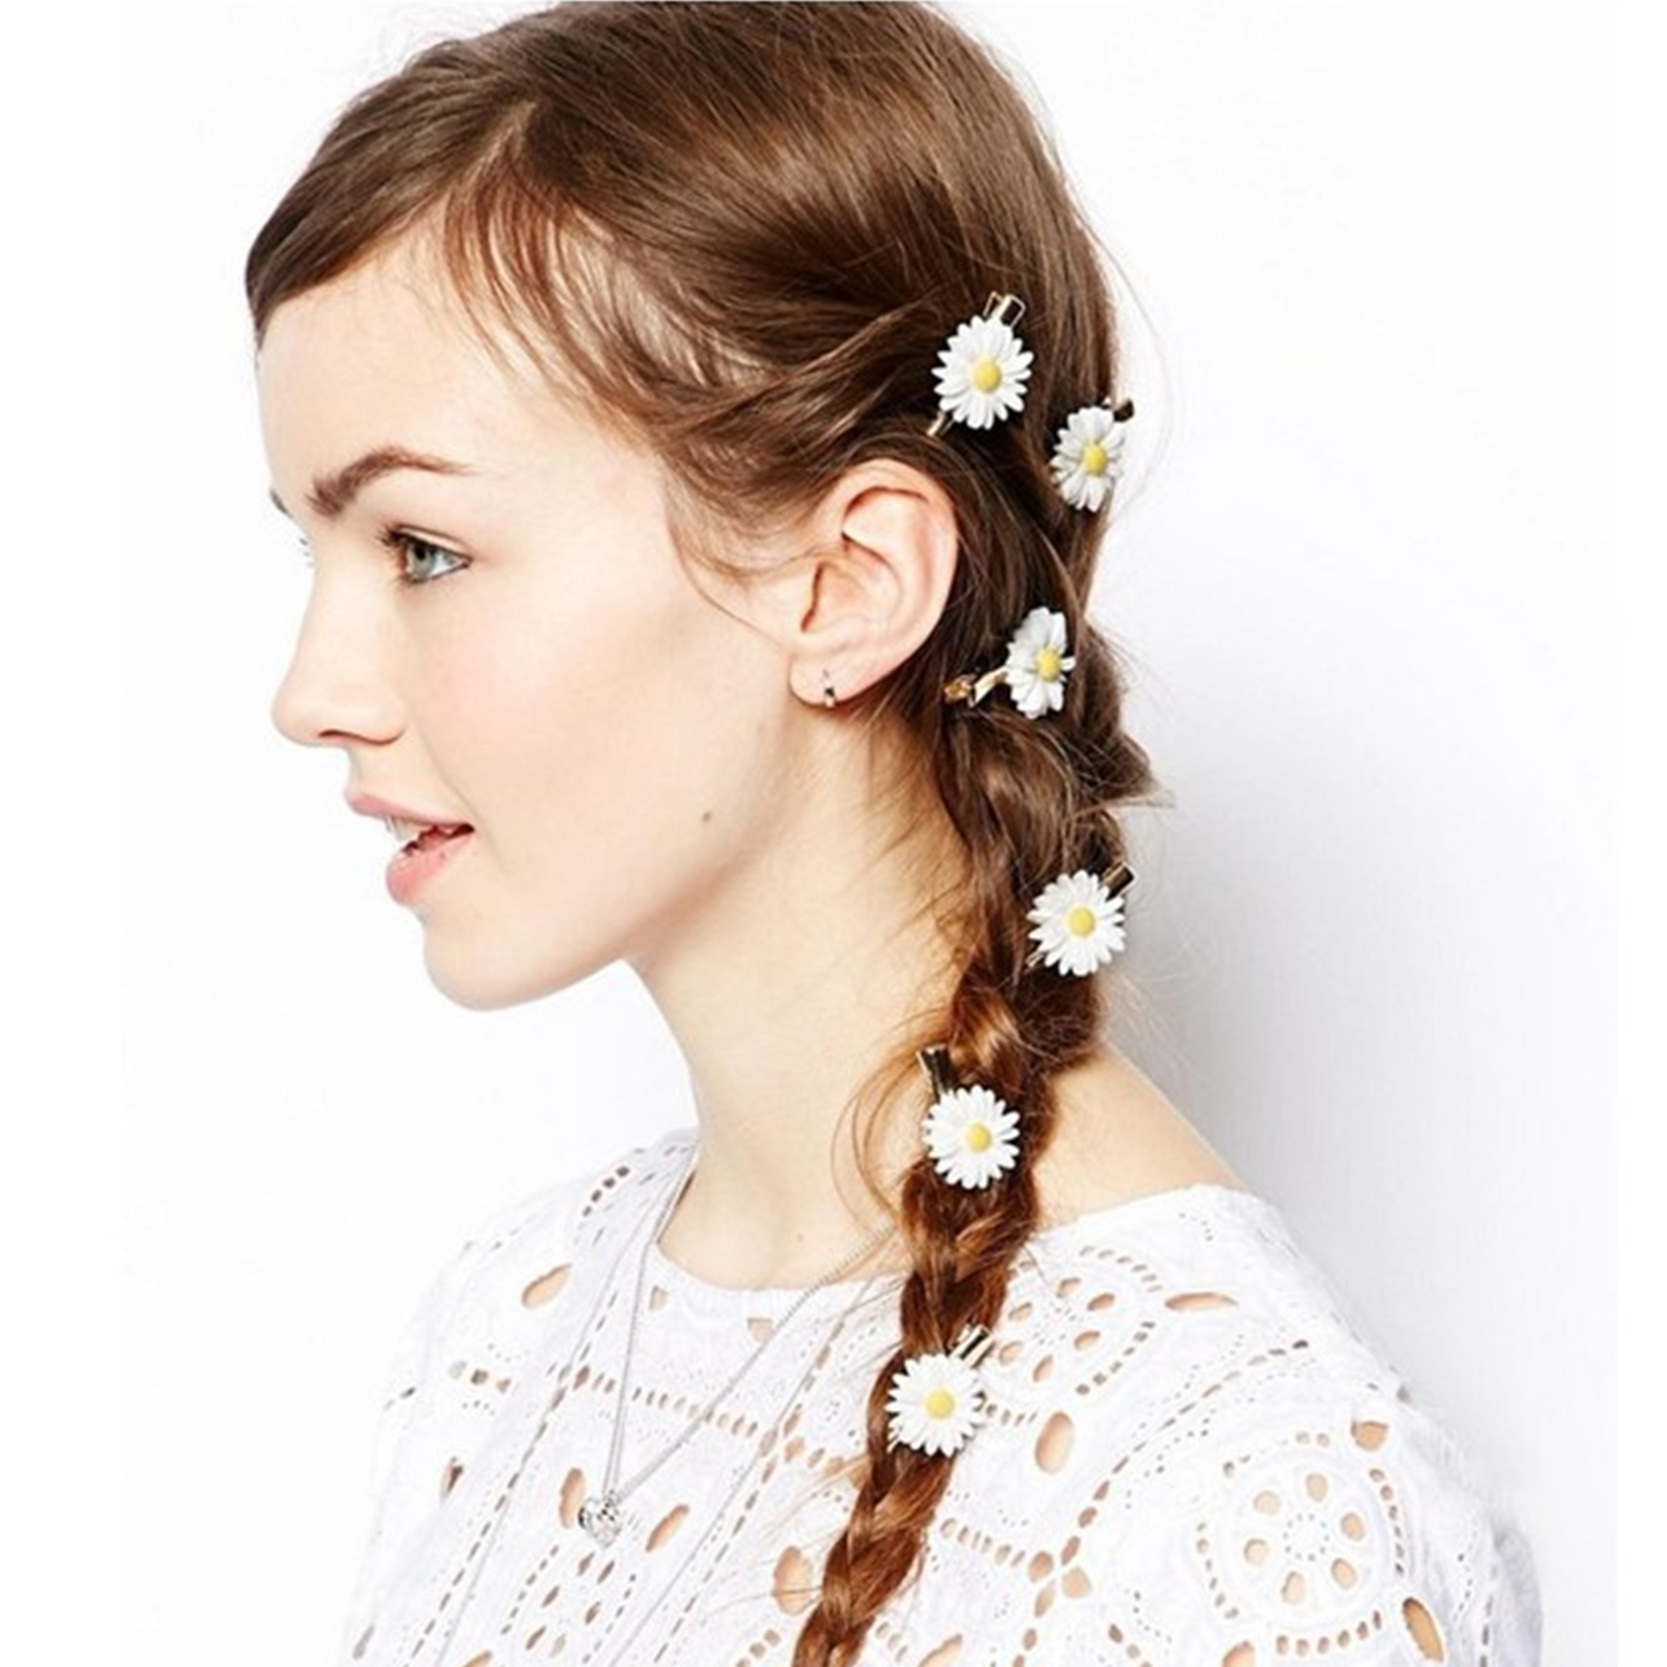 10 Set Summer Style Daisy Girls Hair Clips Metal Clip With Flowers